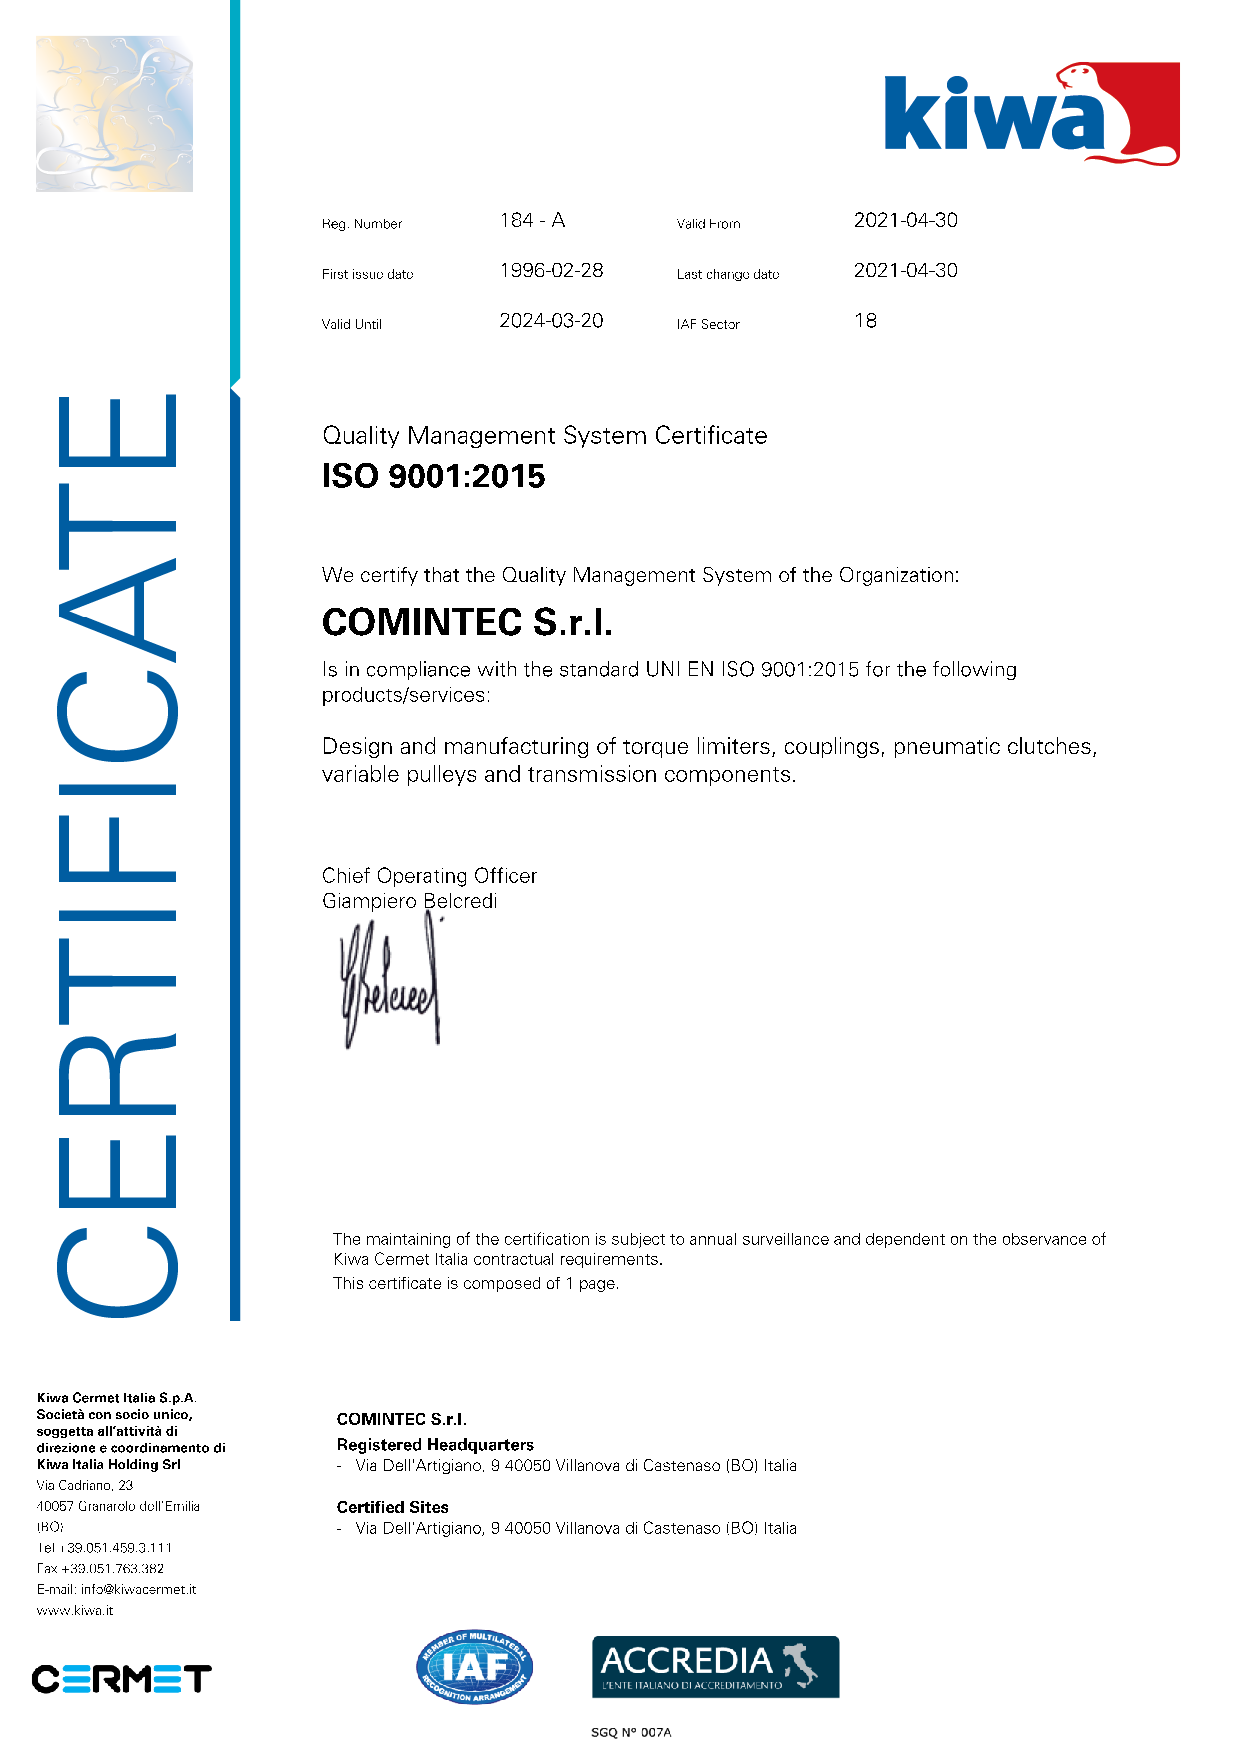 Quality Management System Certificate ISO-9001 - ComInTec